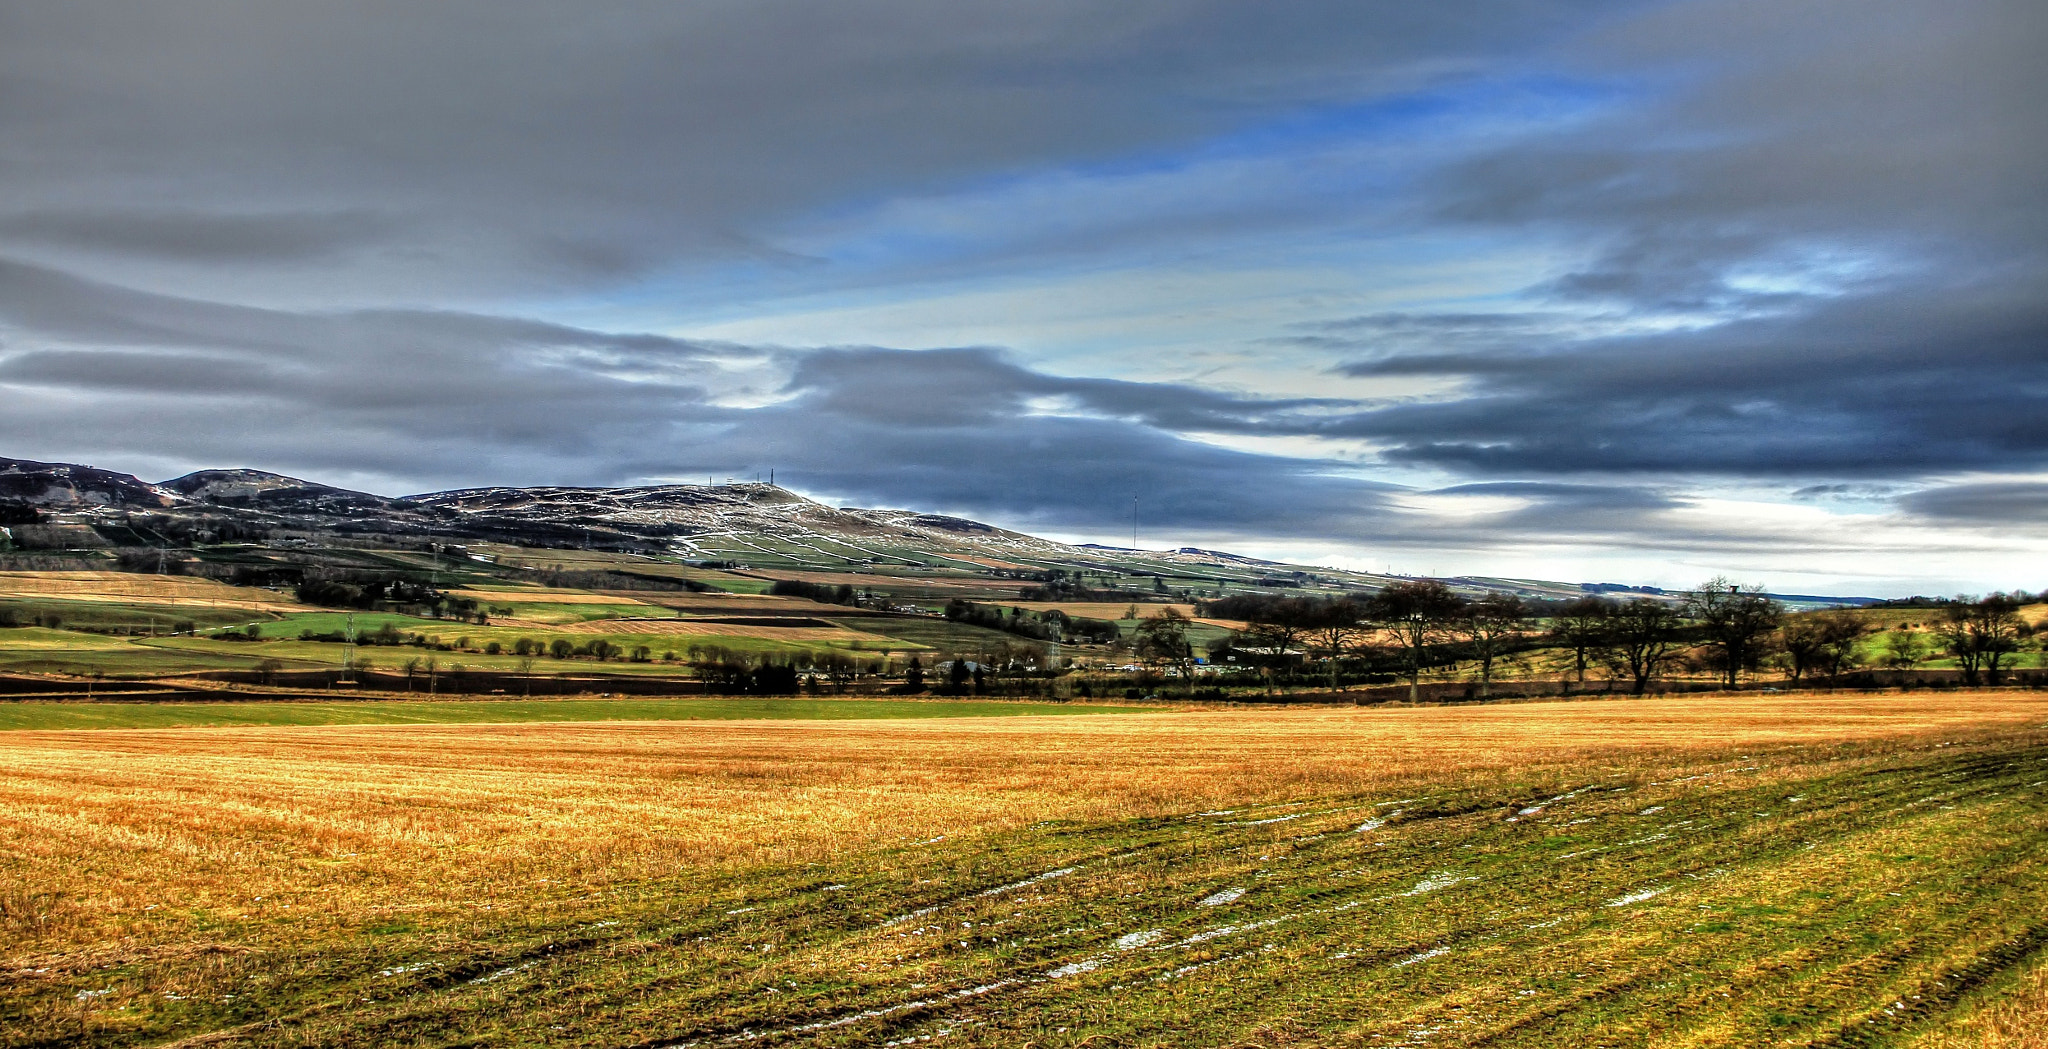 Photograph Sidlaws Hills by Hilda Murray on 500px